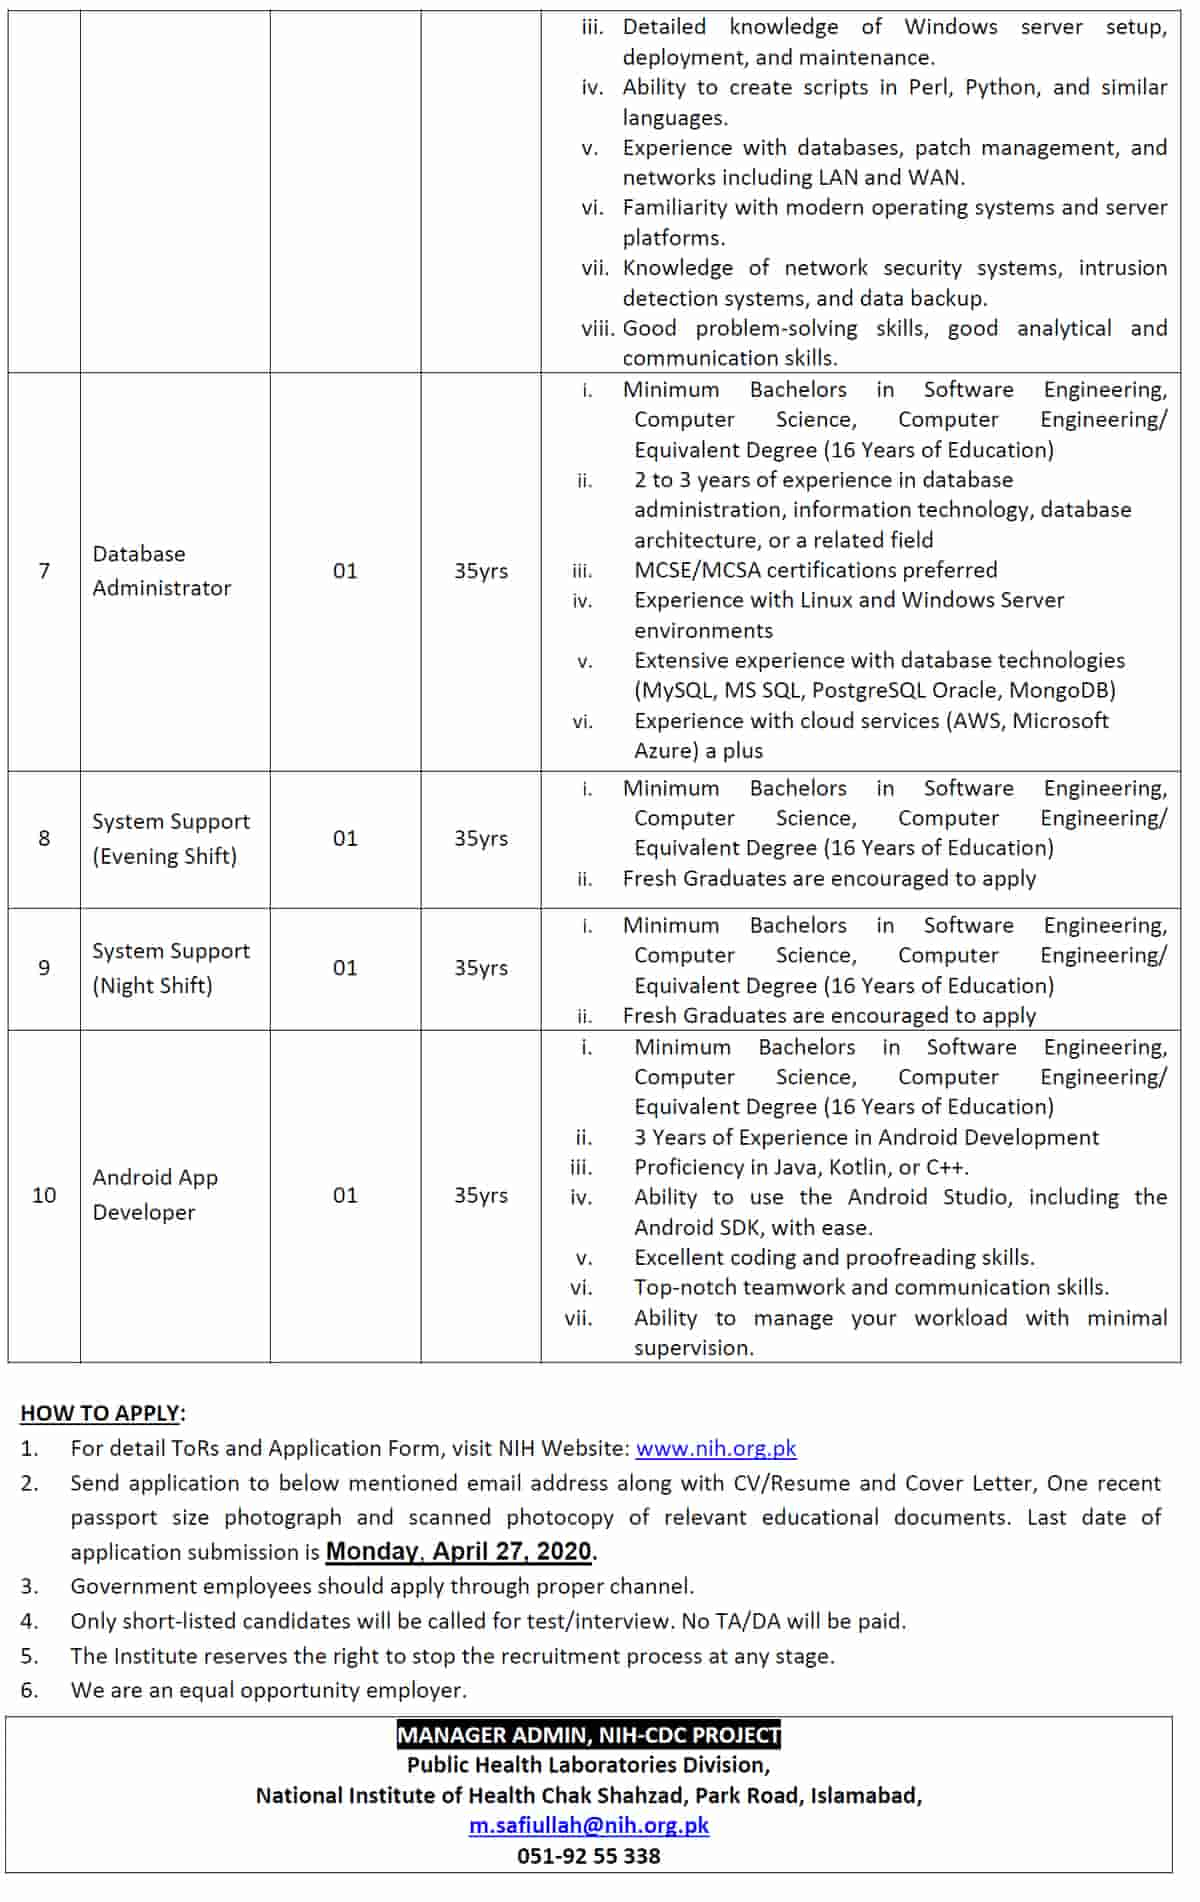 National Institute of Health NIH Islamabad Jobs April 2020 Application Form 2